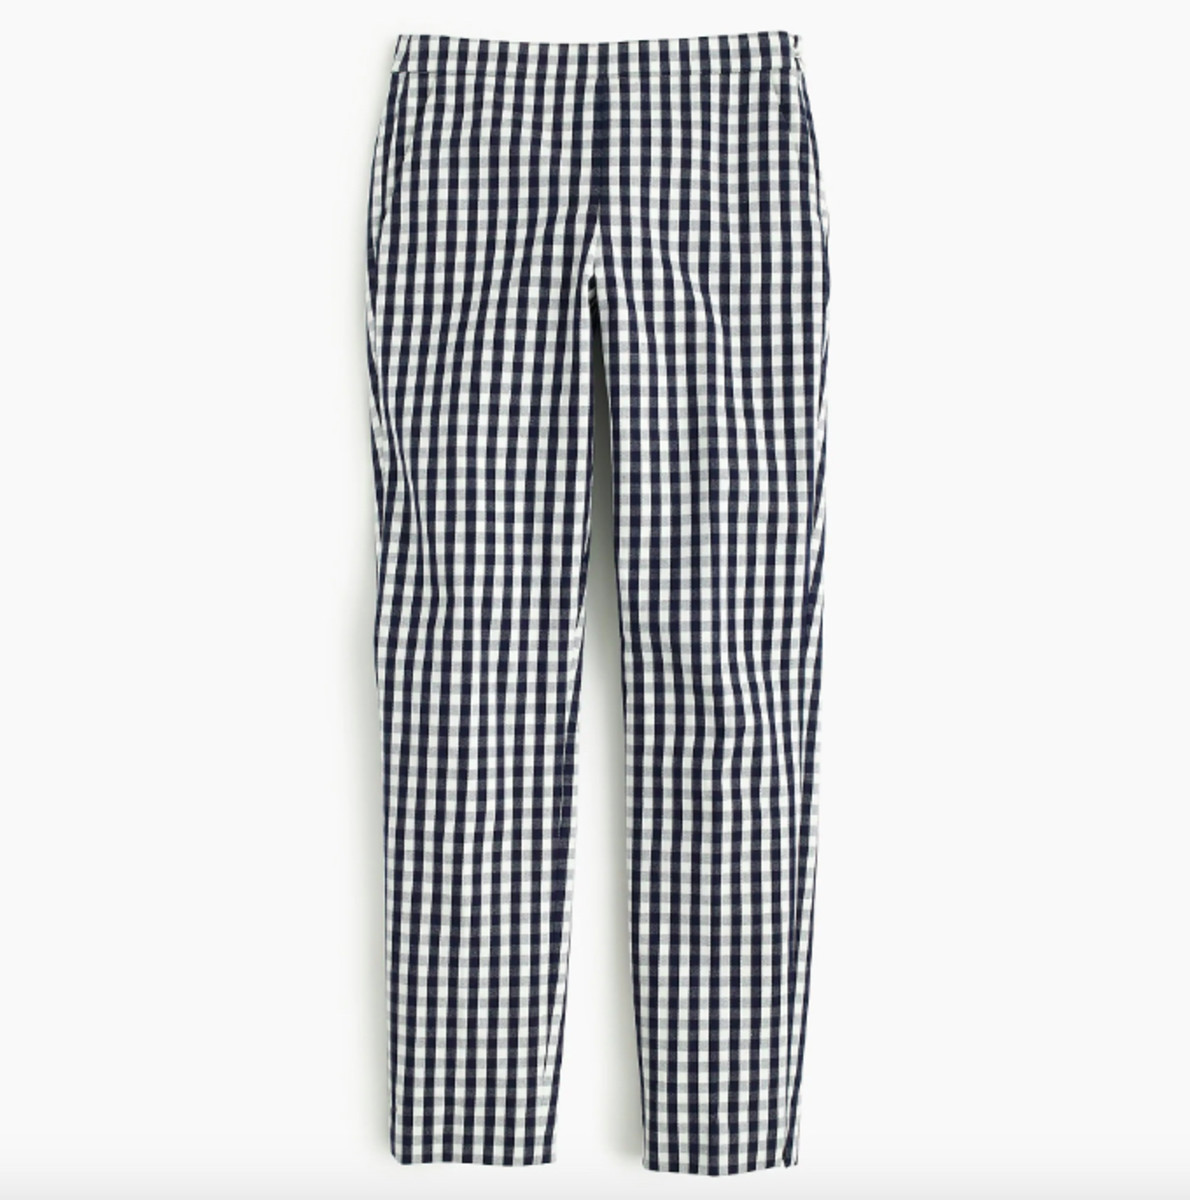 J.Crew Martie Pant in Gingham, $89.50, available here.